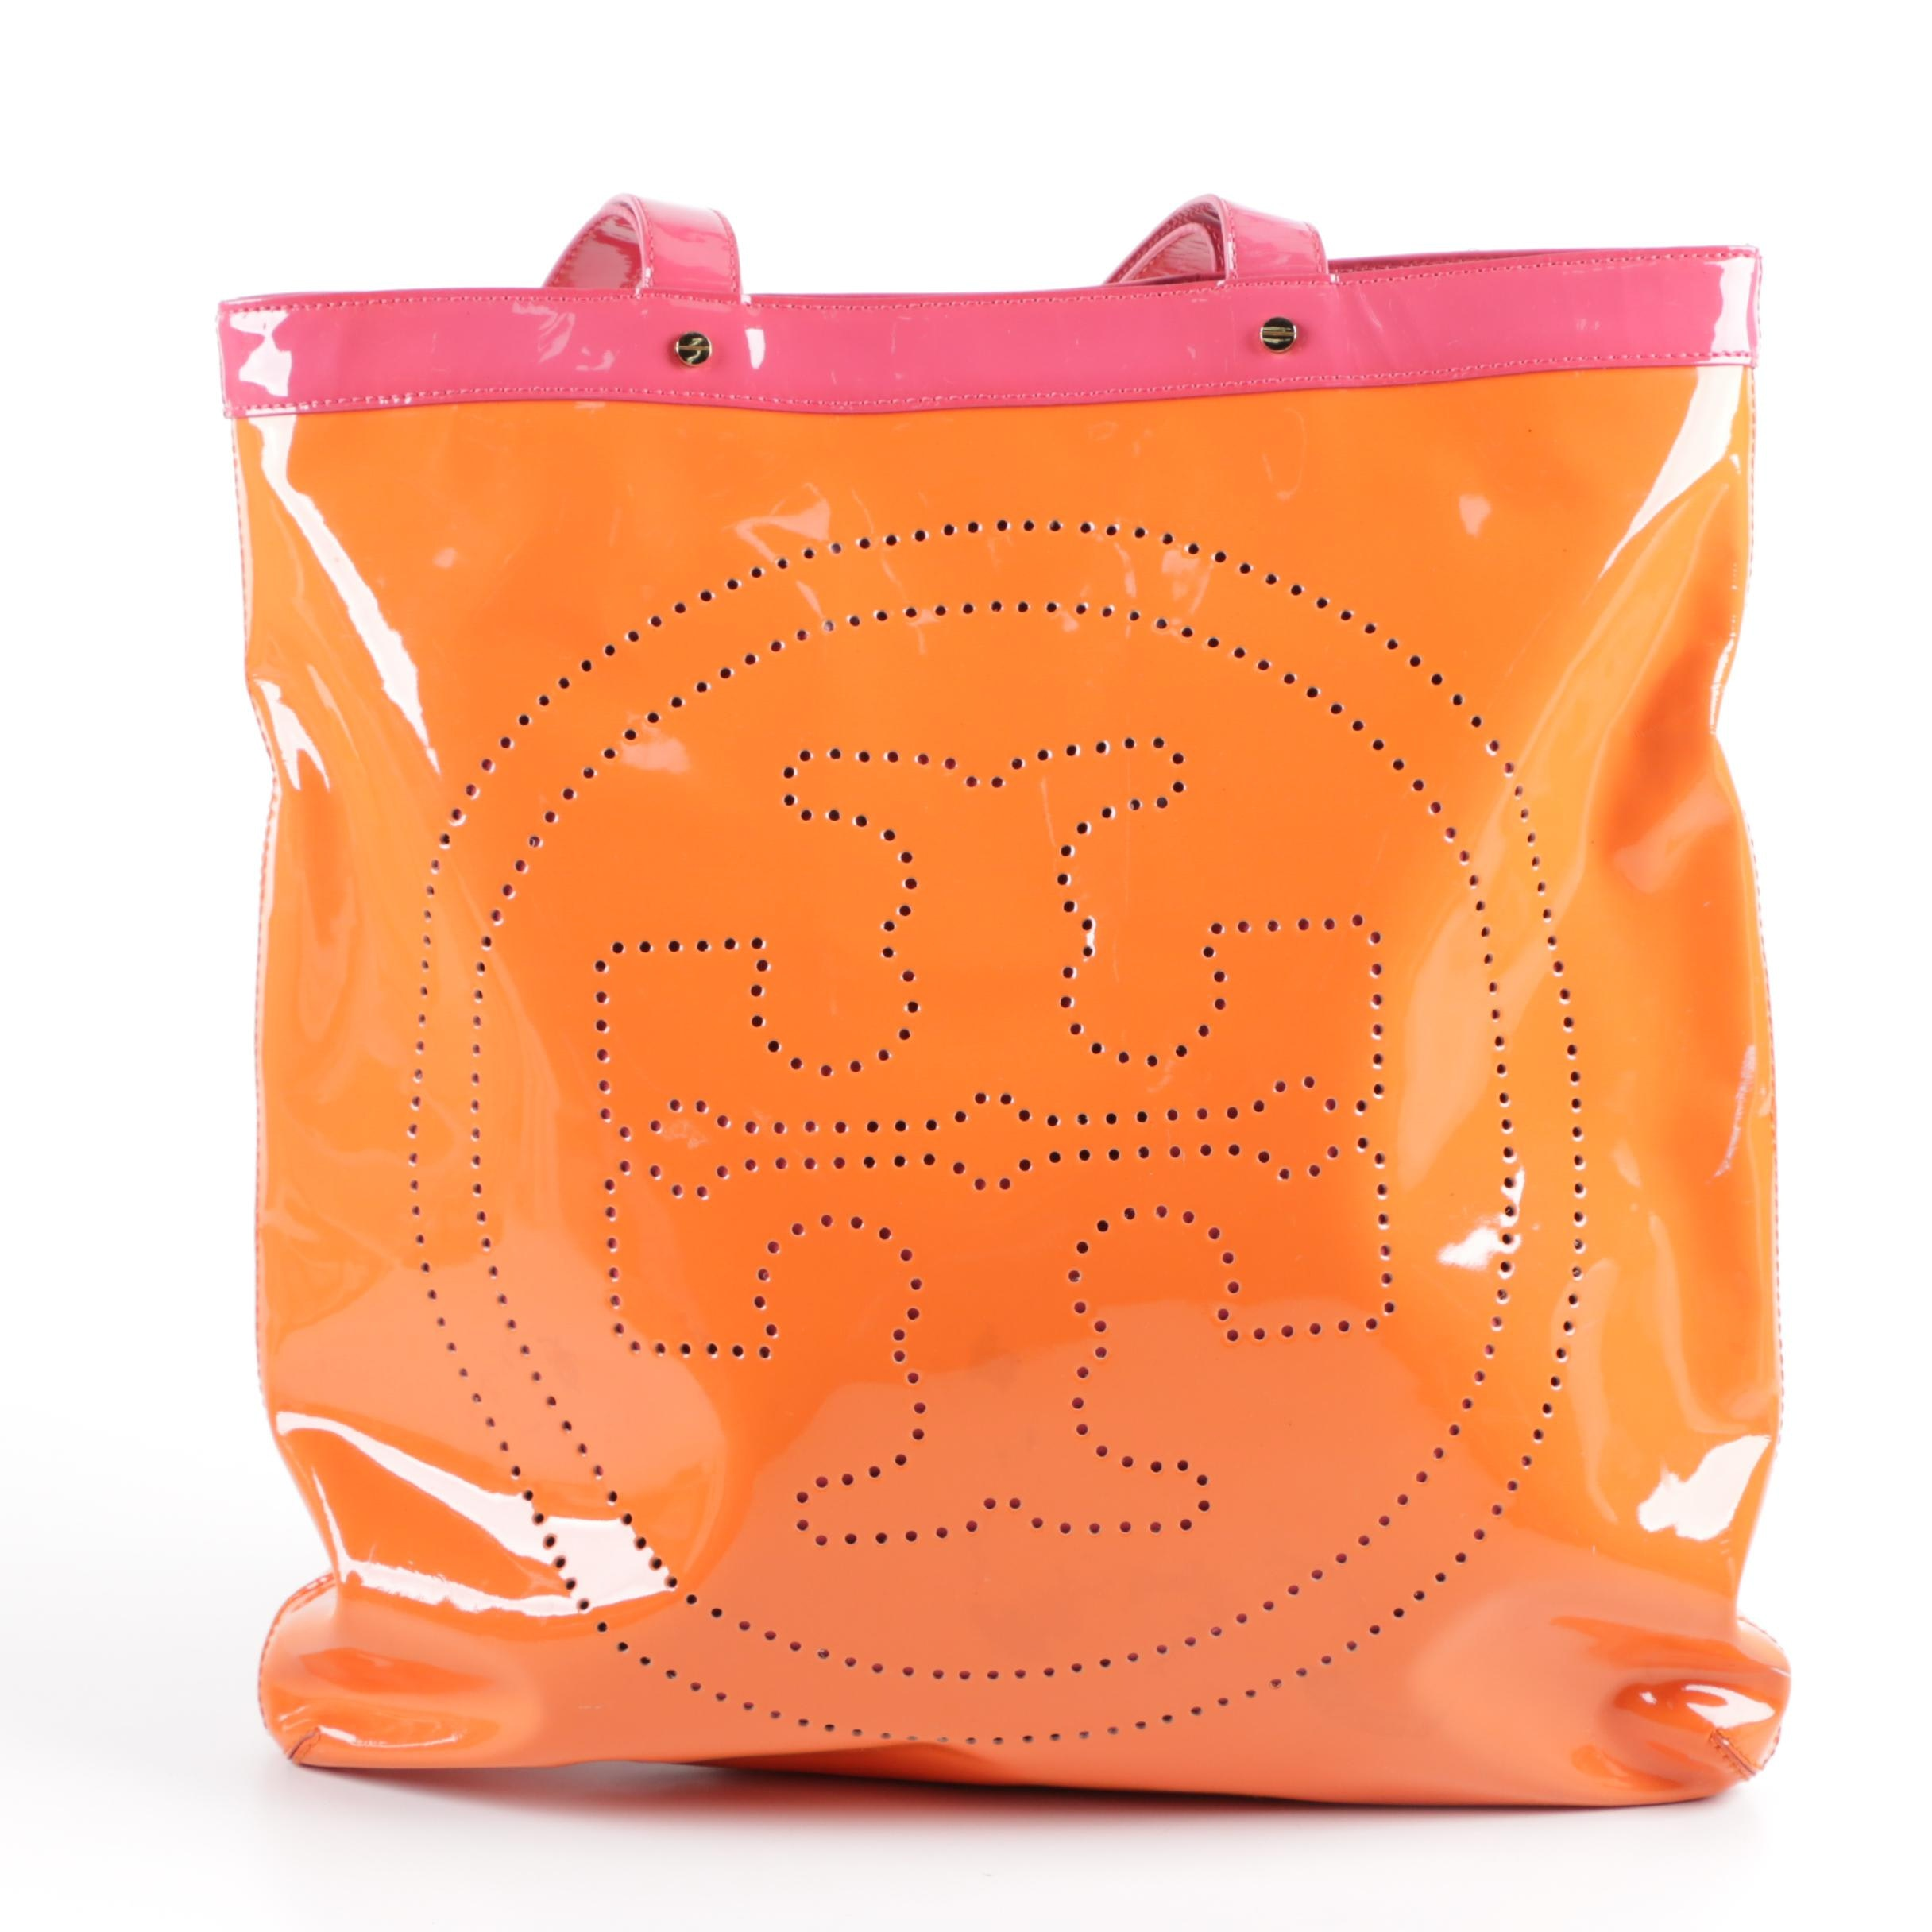 Tory Burch Orange and Pink Patent Leather Tote Bag